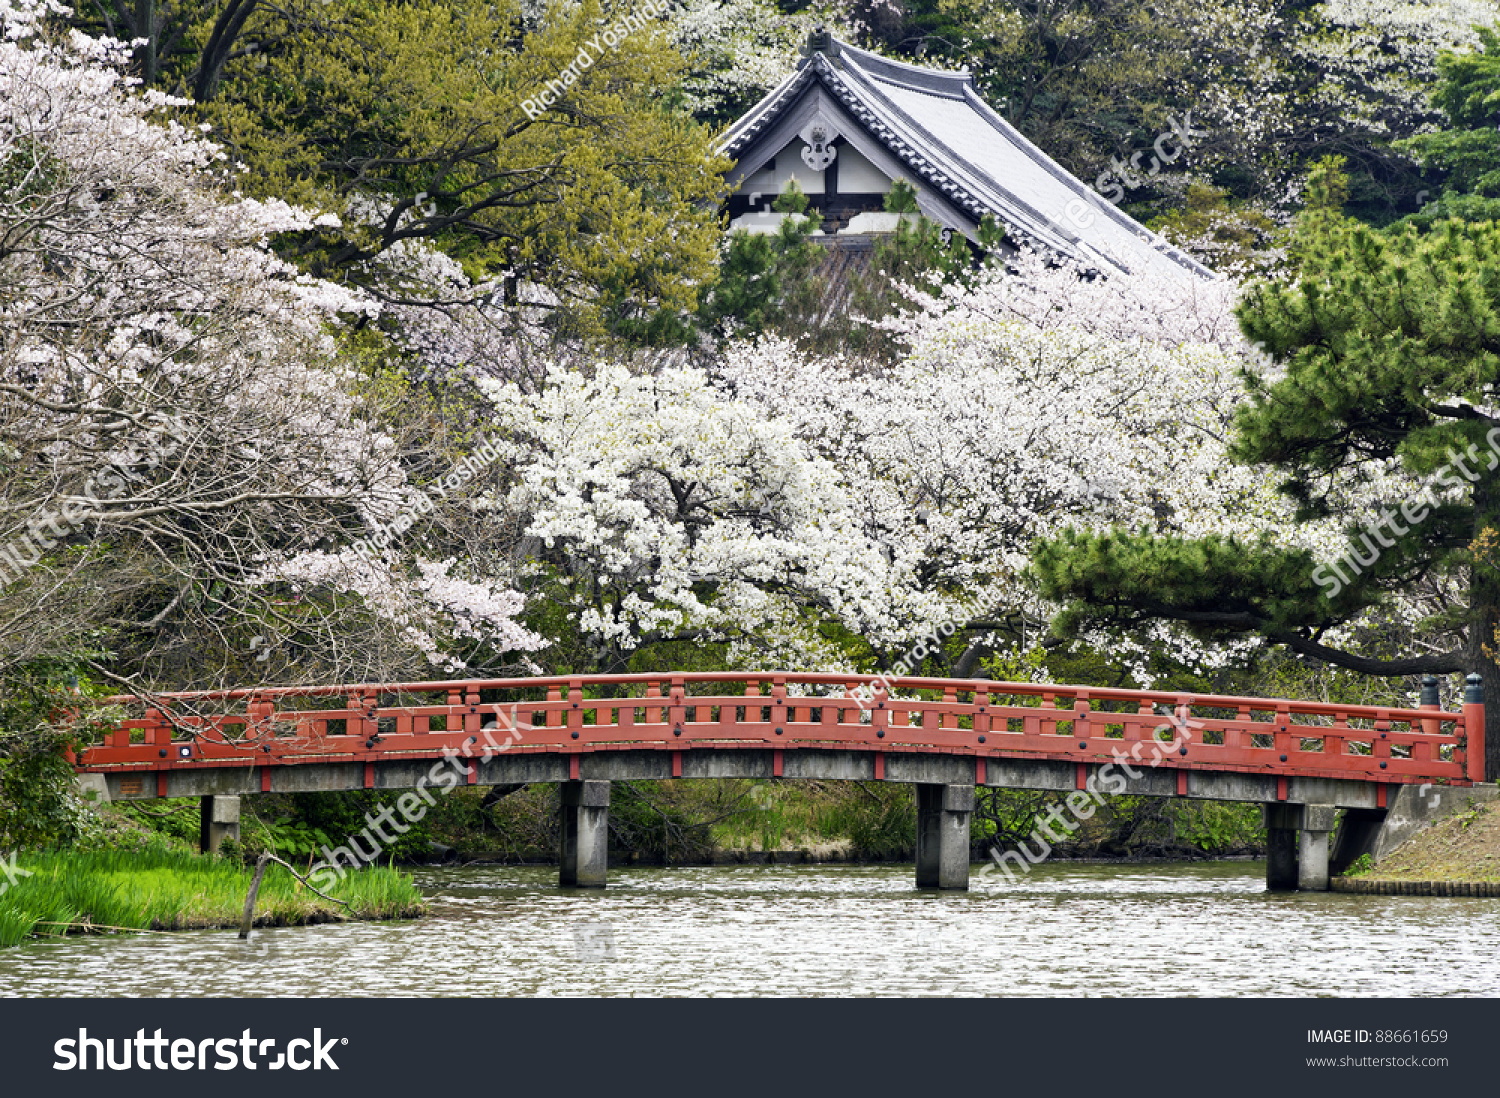 cherry blossoms at japanese garden in yokohama city japan - Japanese Garden Cherry Blossom Bridge